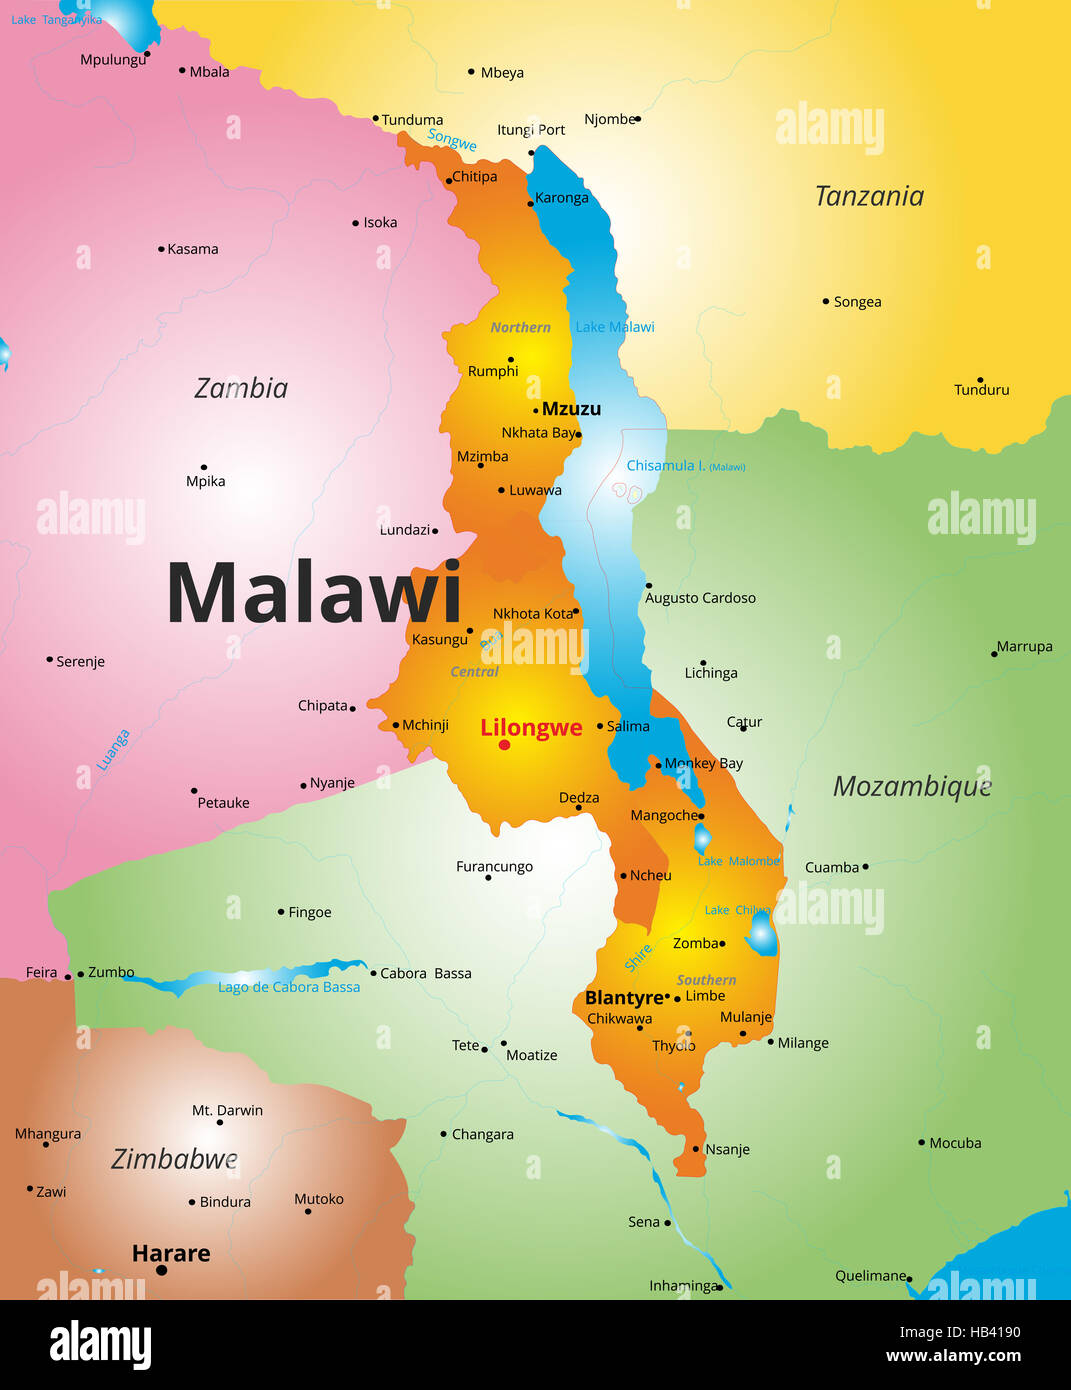 3d Kenya Flag Live Wallpaper Color Map Of Malawi Country Stock Photo 127322636 Alamy